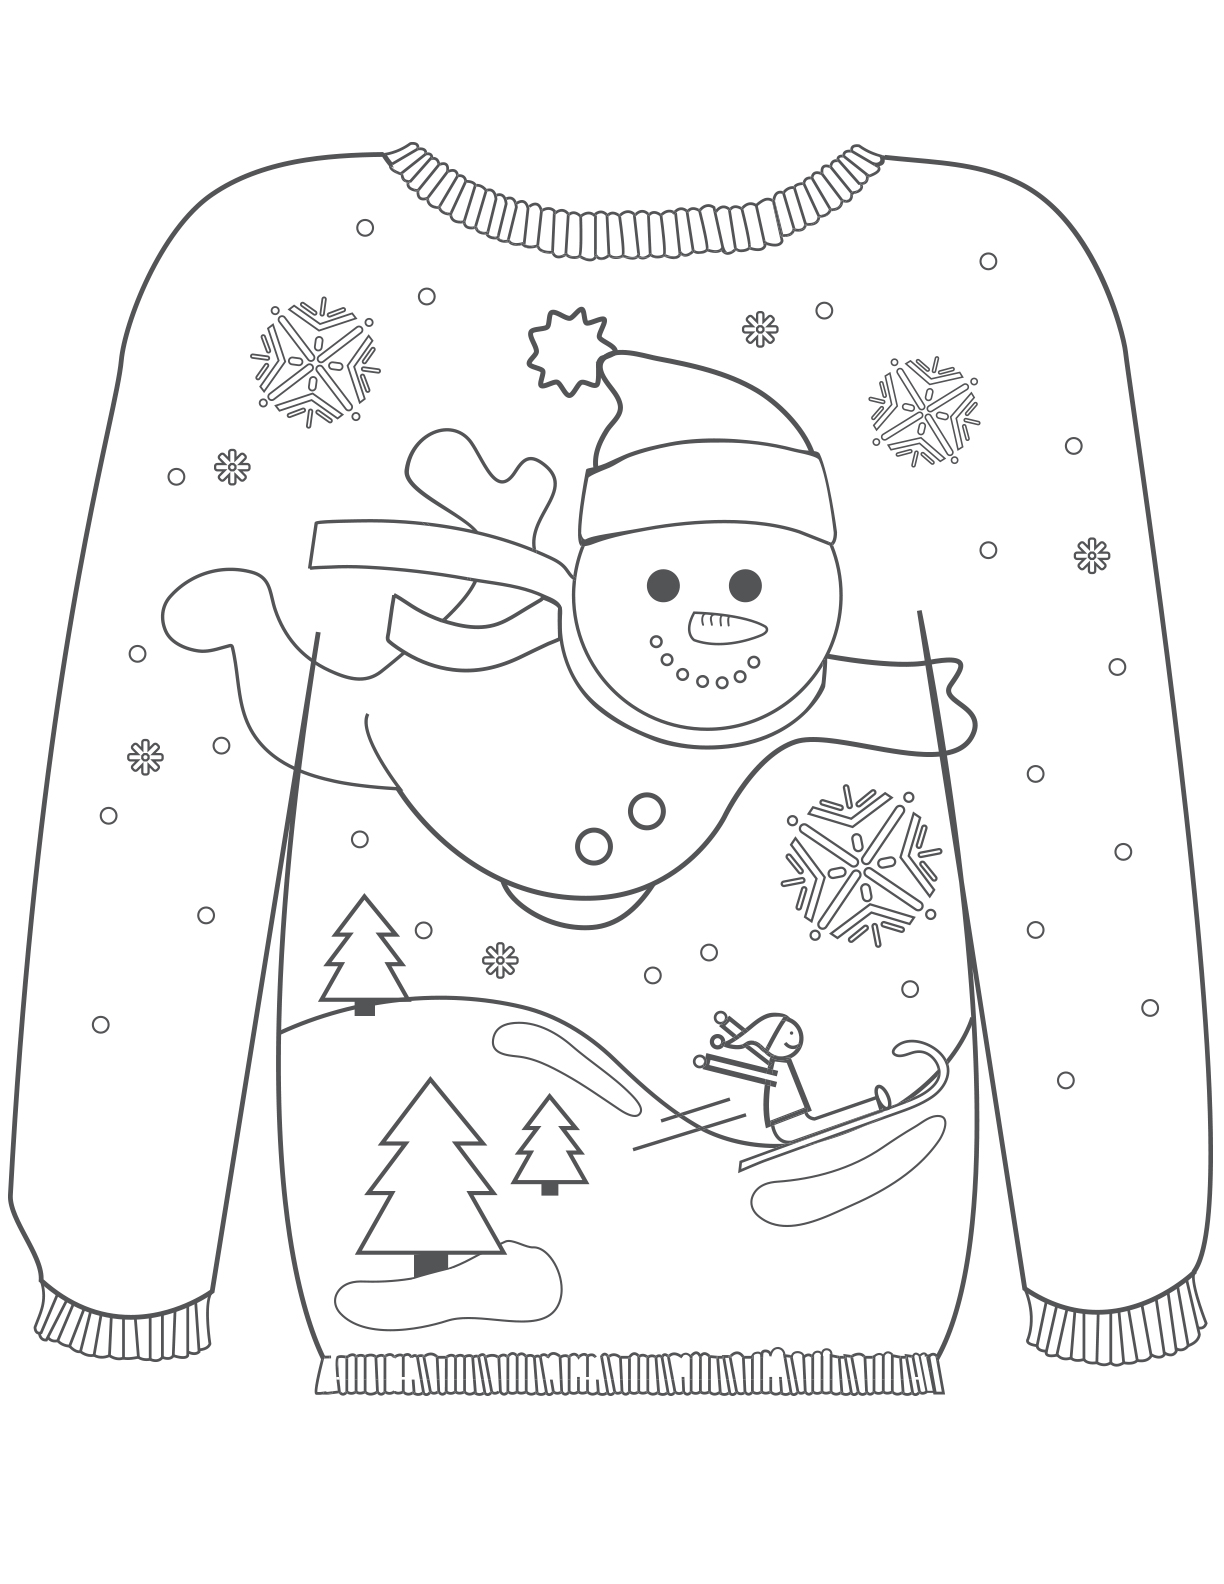 Ugly christmas sweater clipart black and white graphic free library Coloring Sheets - Ragstock graphic free library